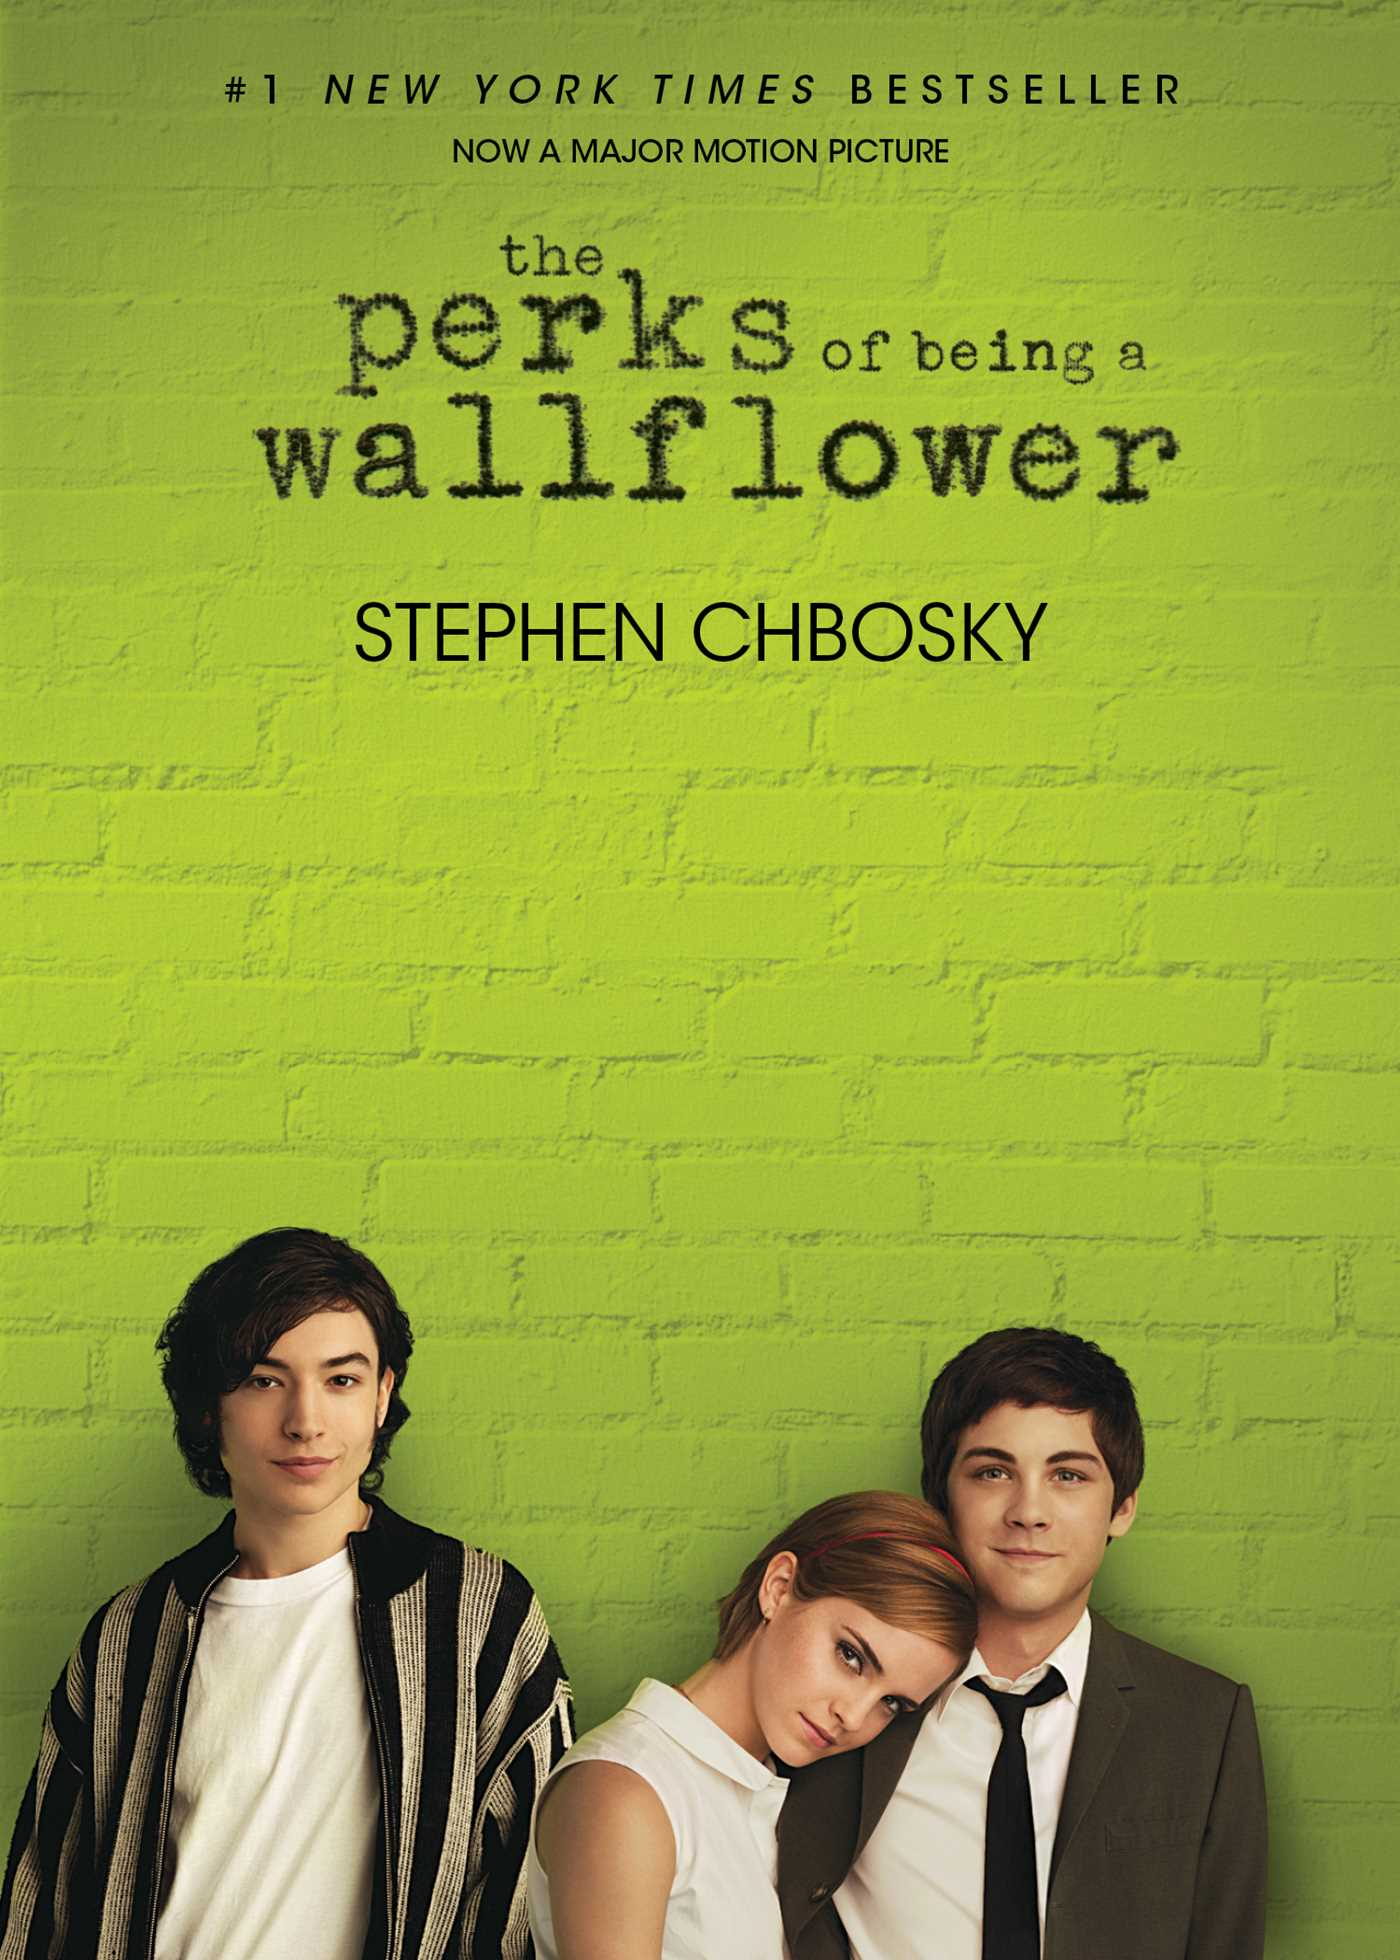 Perks-of-being-a-wallflower-9781439122433_hr